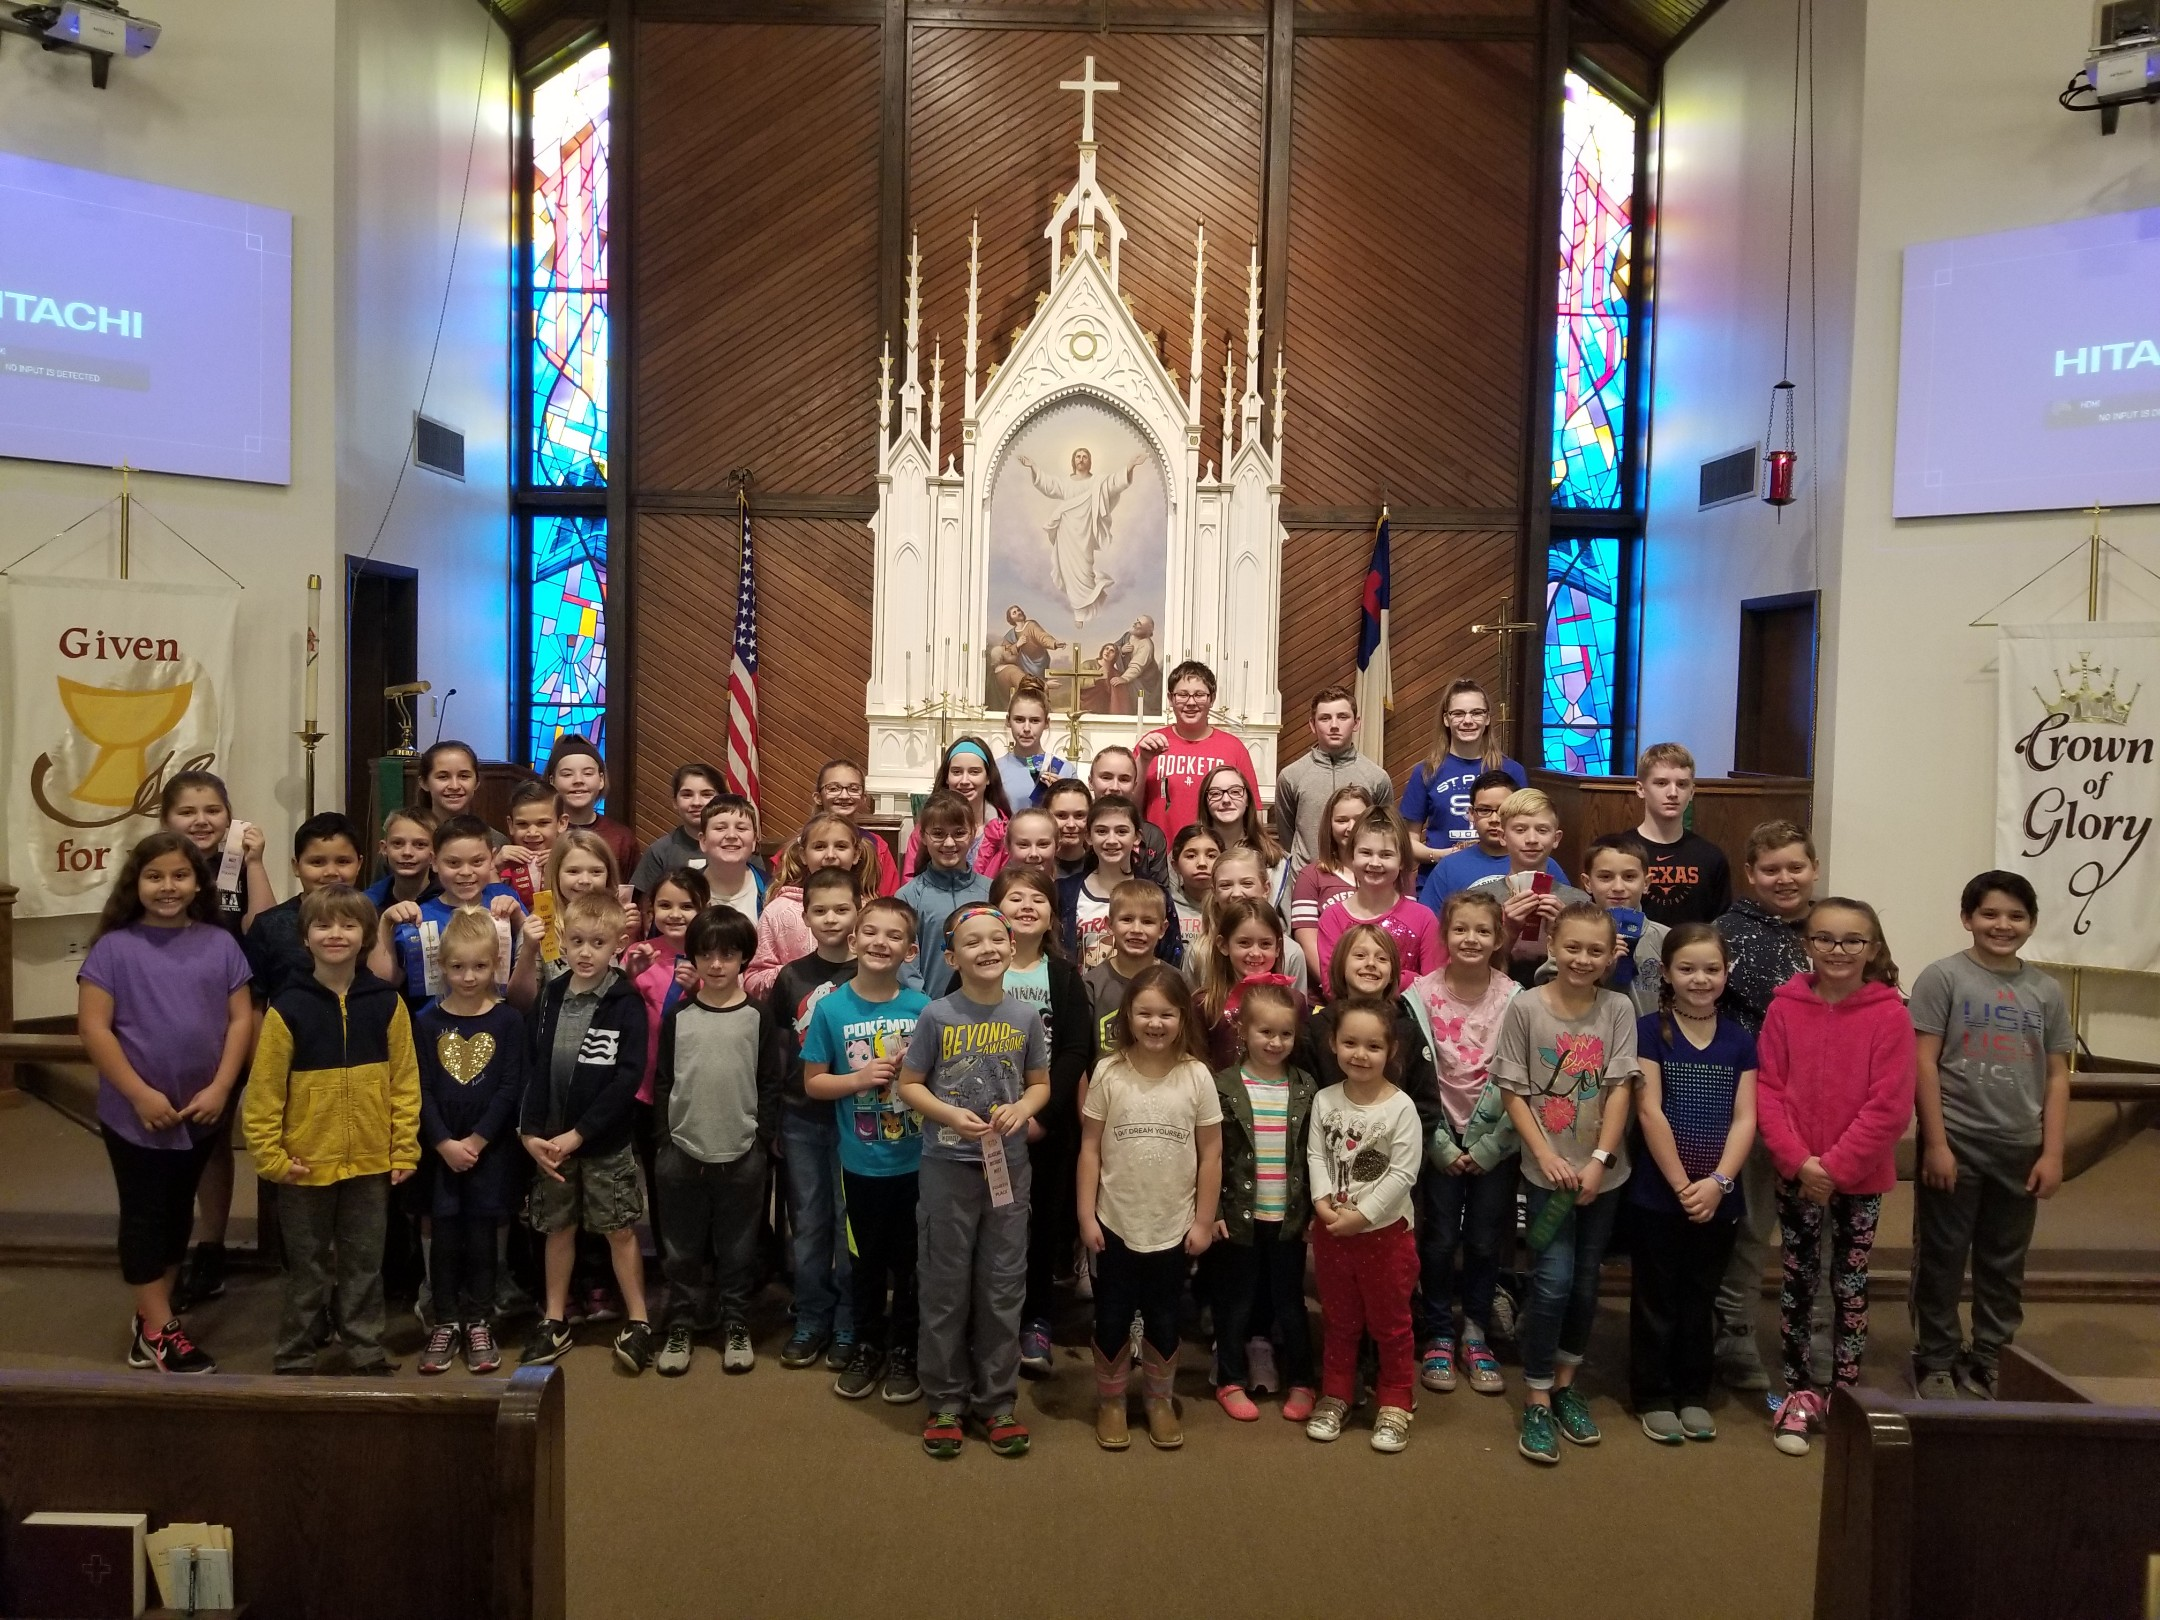 Kinder - Grade 8 PSIA competitors were recognized at our Midweek Chapel Service.